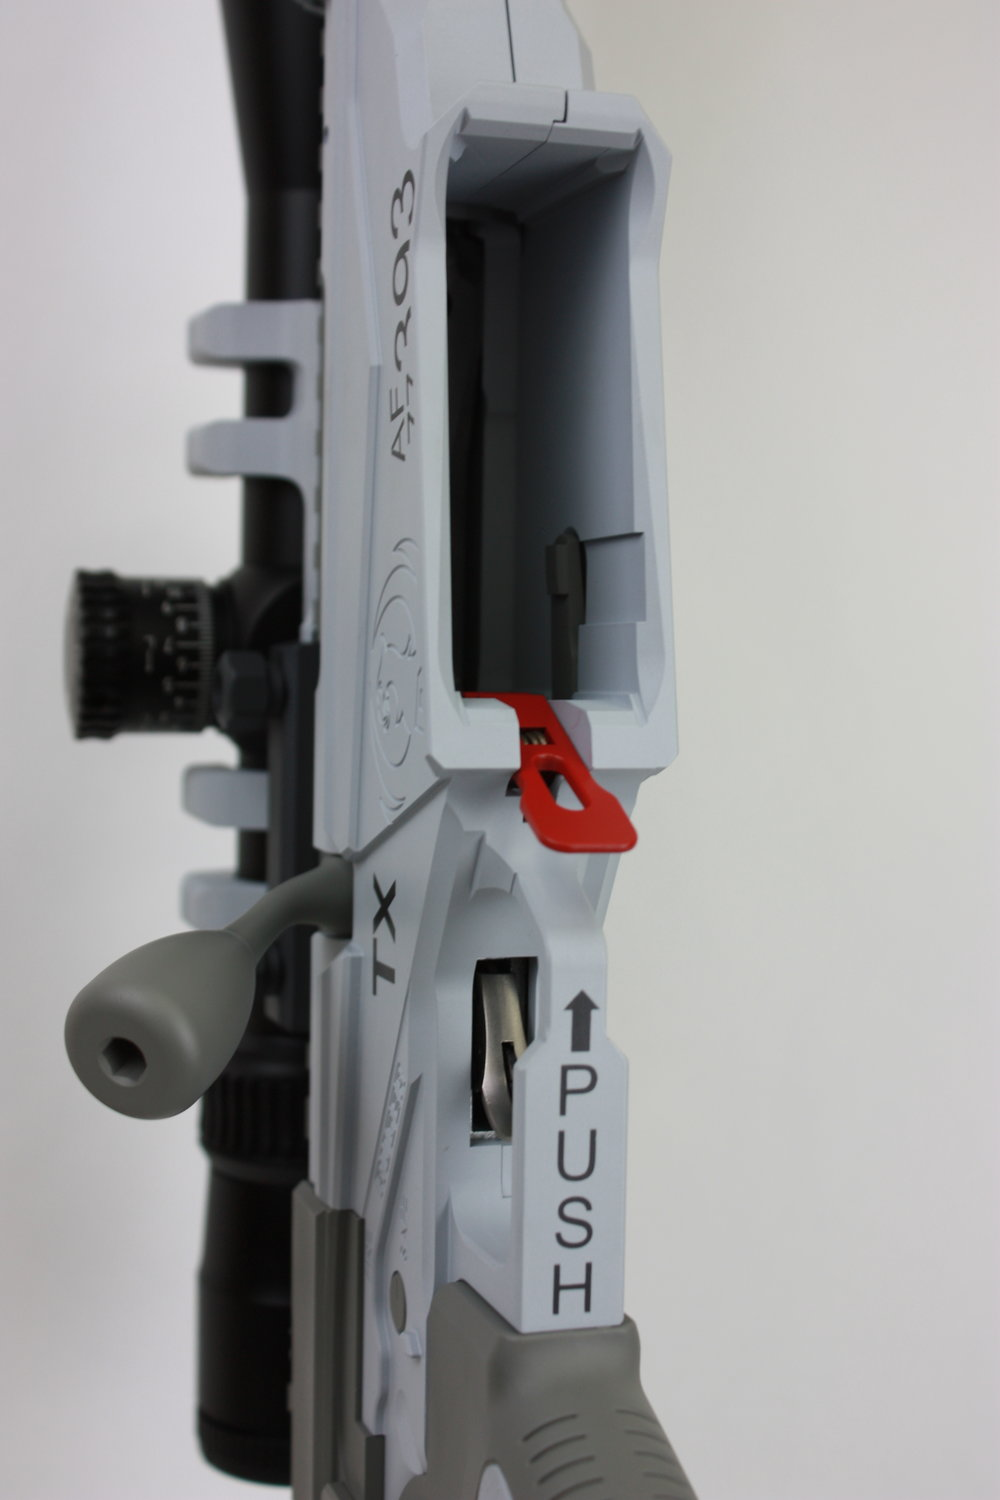 Most levers and controls in an aircraft are labeled with clear instructions much like this mag release lever.